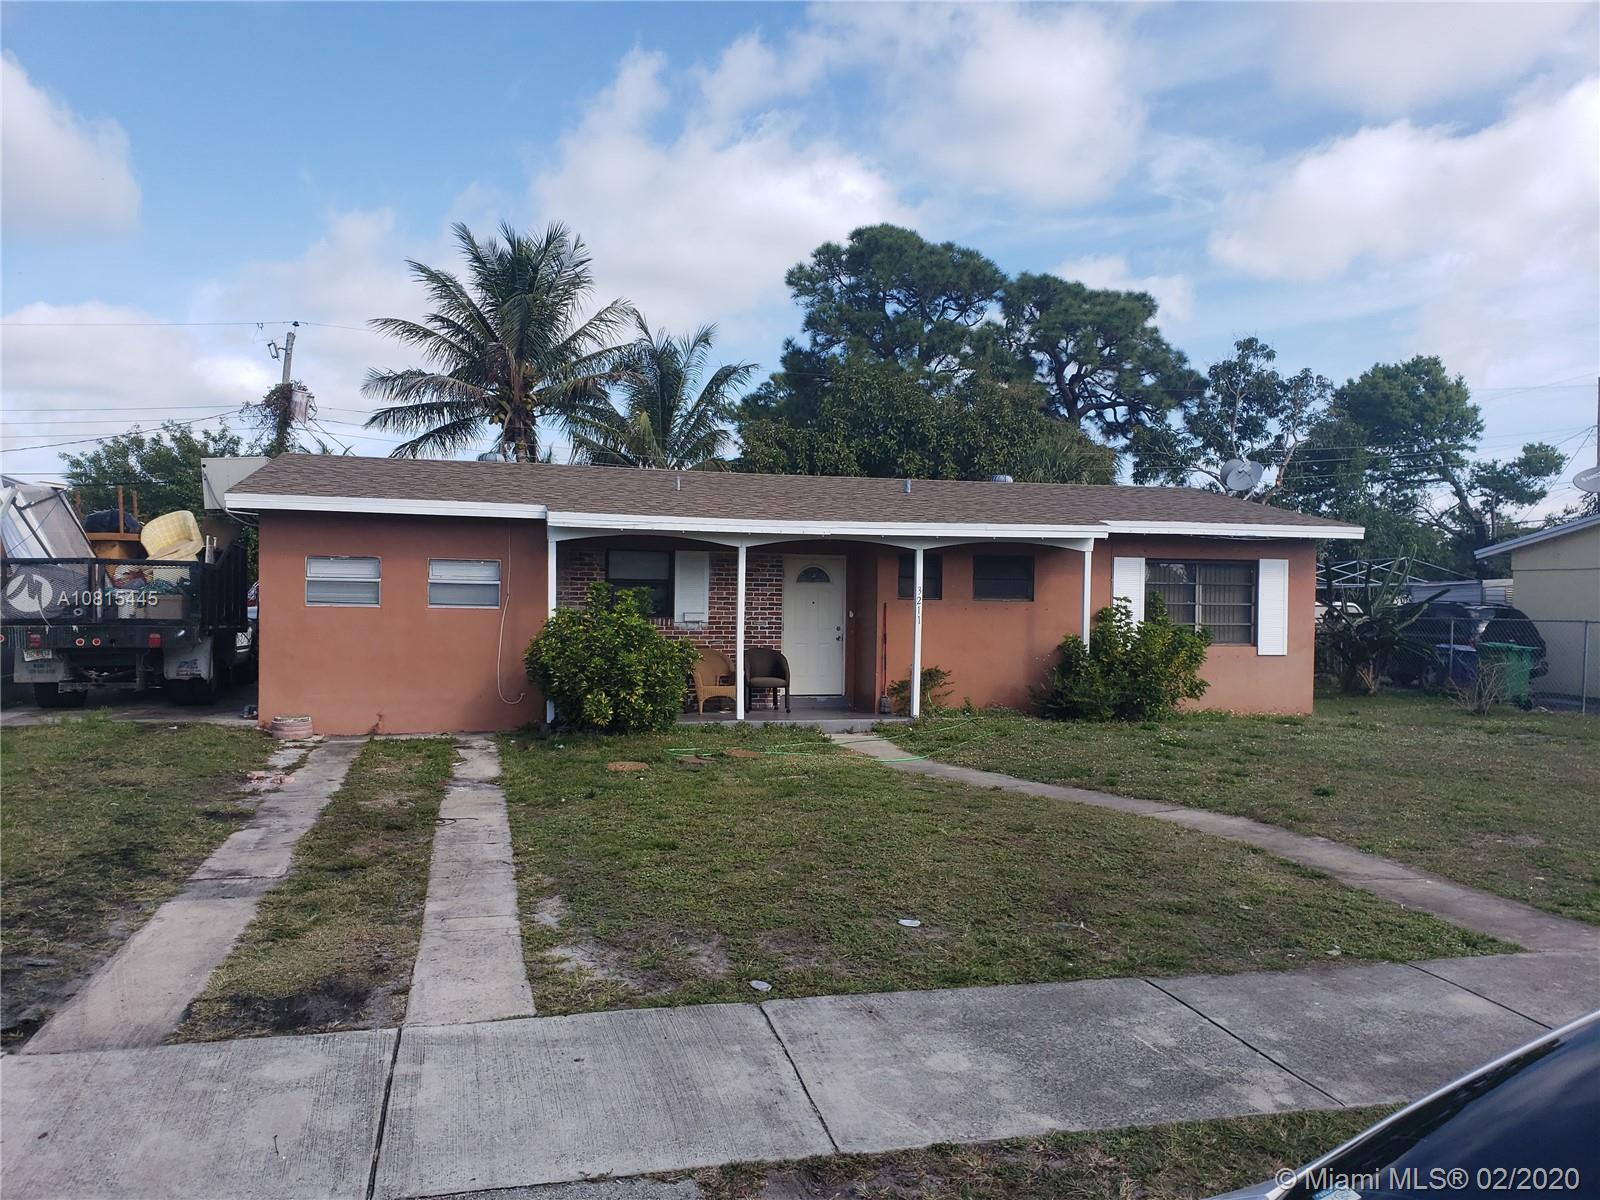 GREAT INVESTMENT OPPORTUNITY!!! Great Tenant. Reliable rent.Well maintained home,needs very little.DO NOT DISTURB TENANT...CALL LISTING AGENT FOR APPOINTMENT!!!!